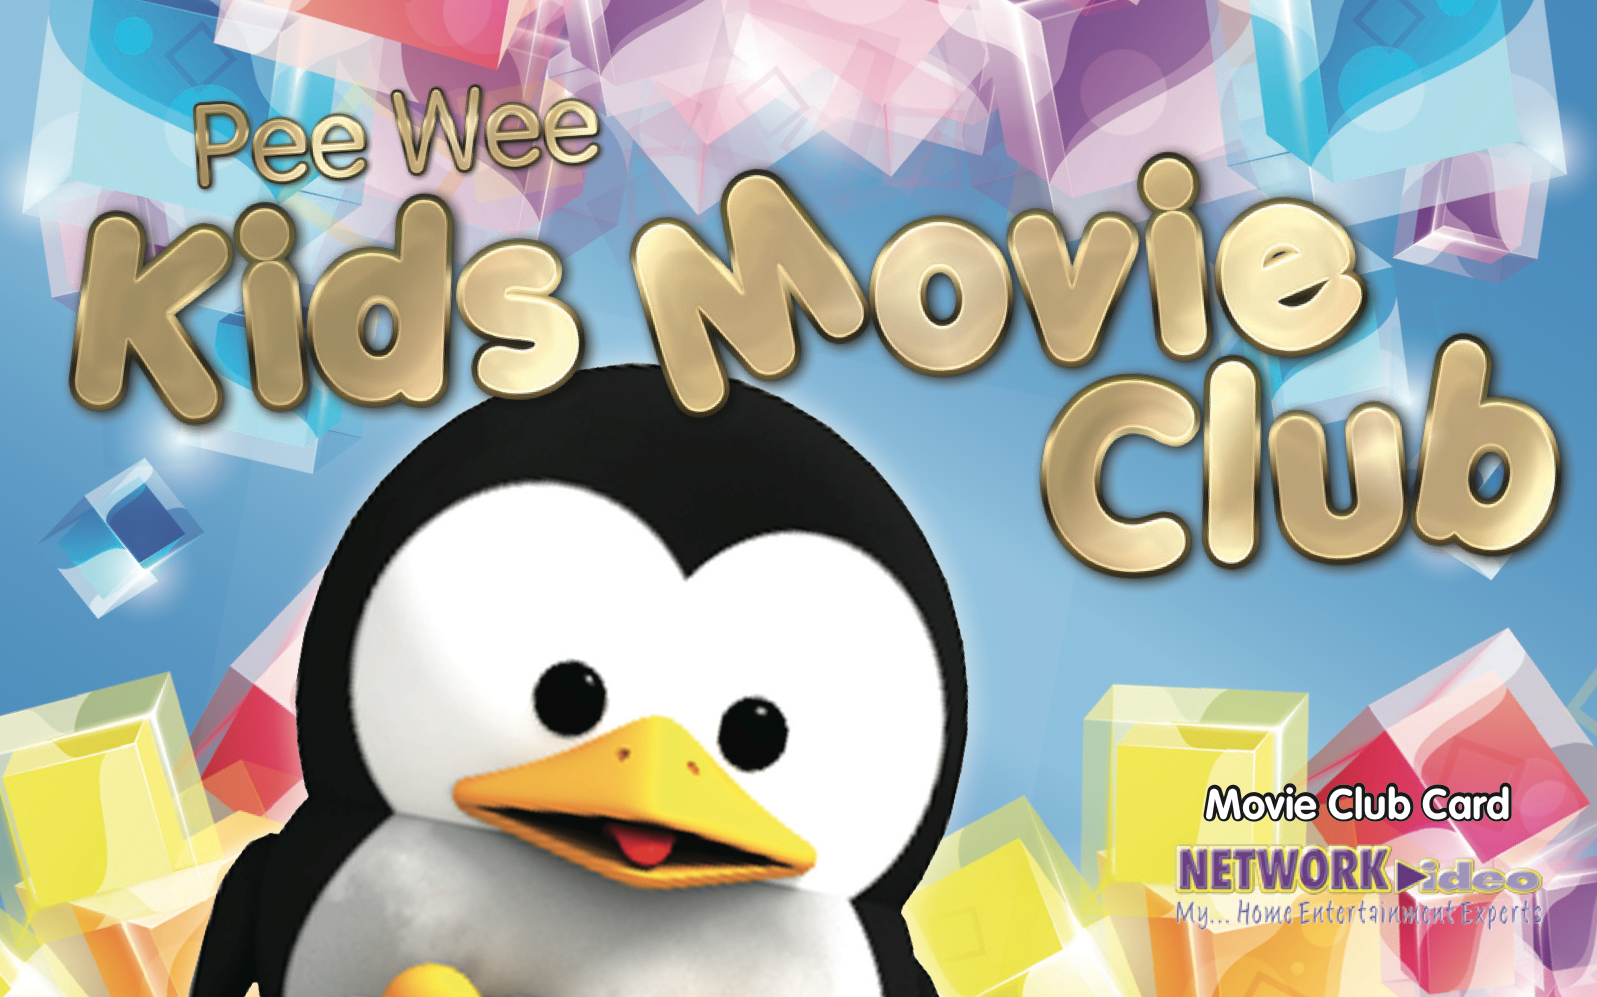 kids movie club Network Video Card